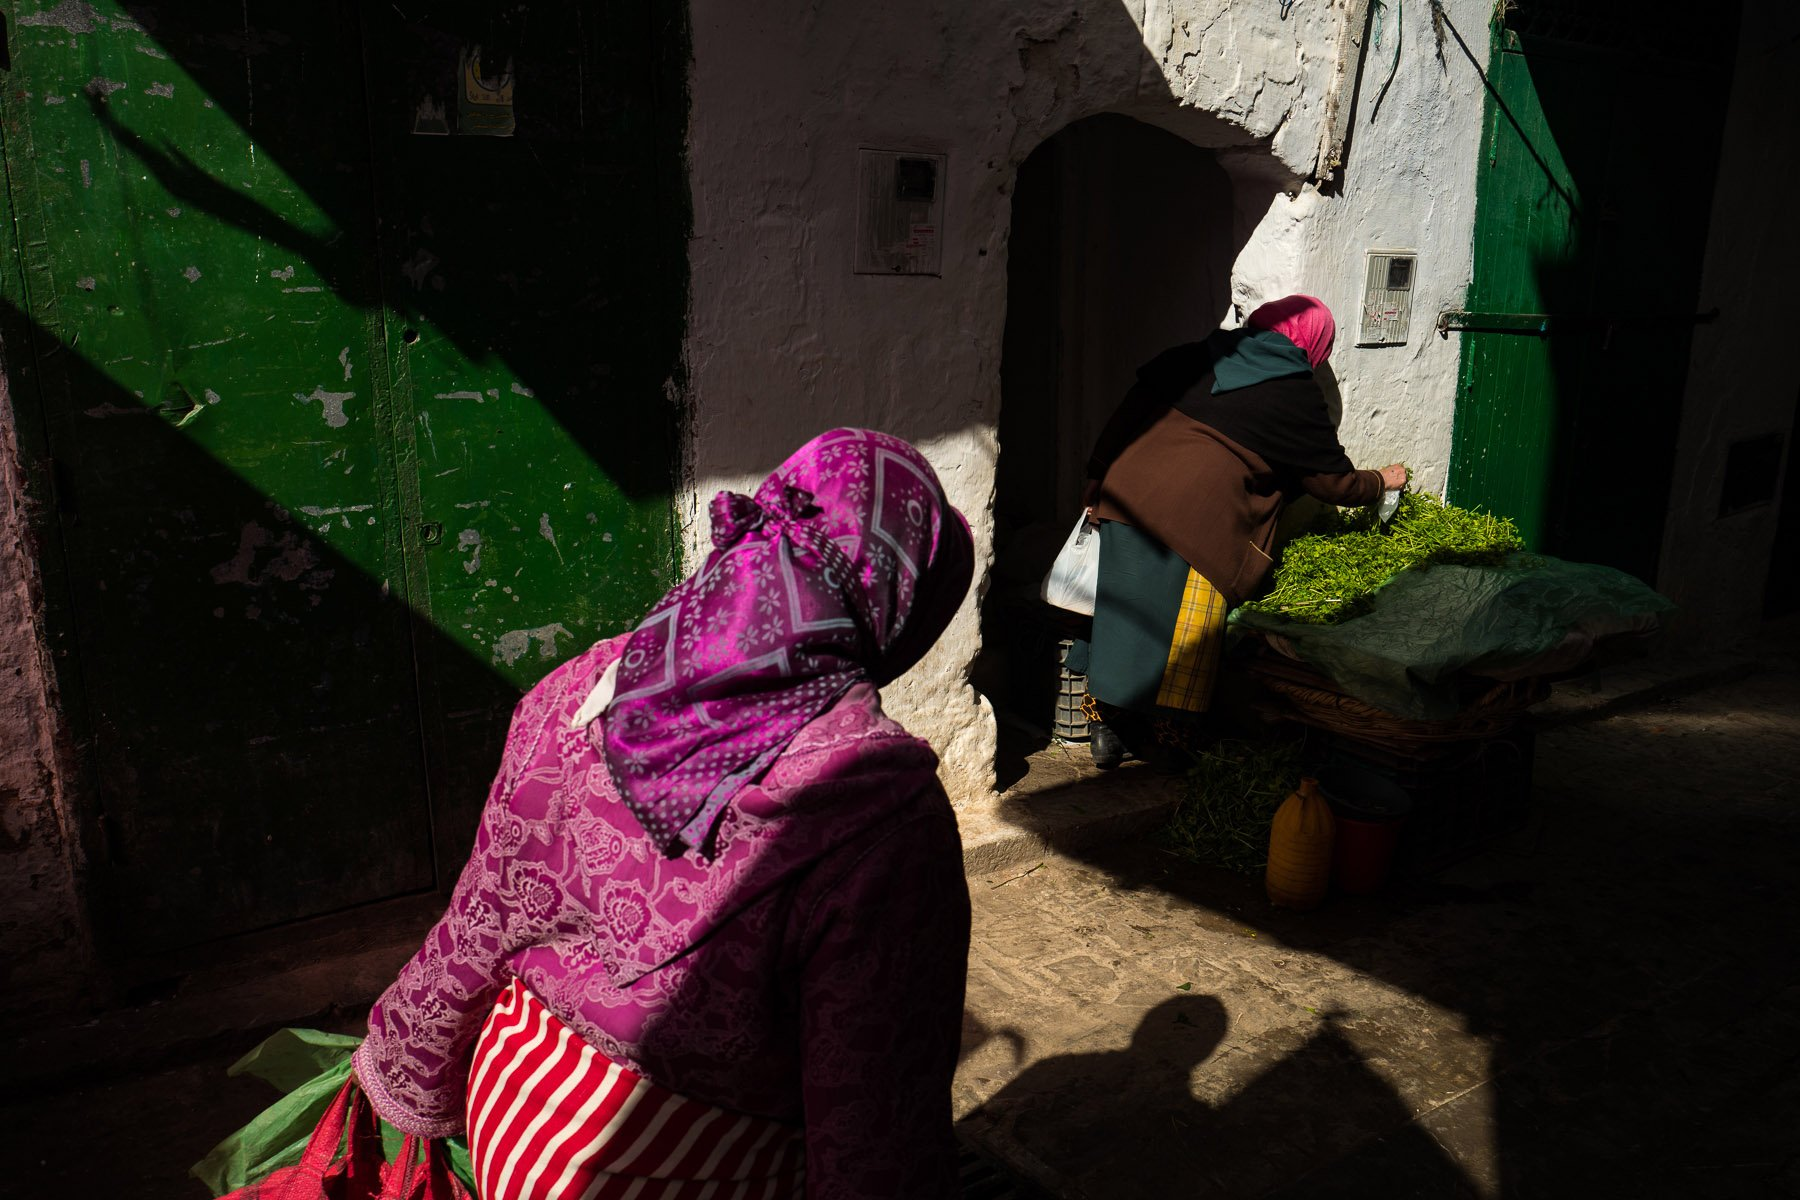 street photography, colorful images with high contrast and shadows in Morocco, Africa, by ivan Margot